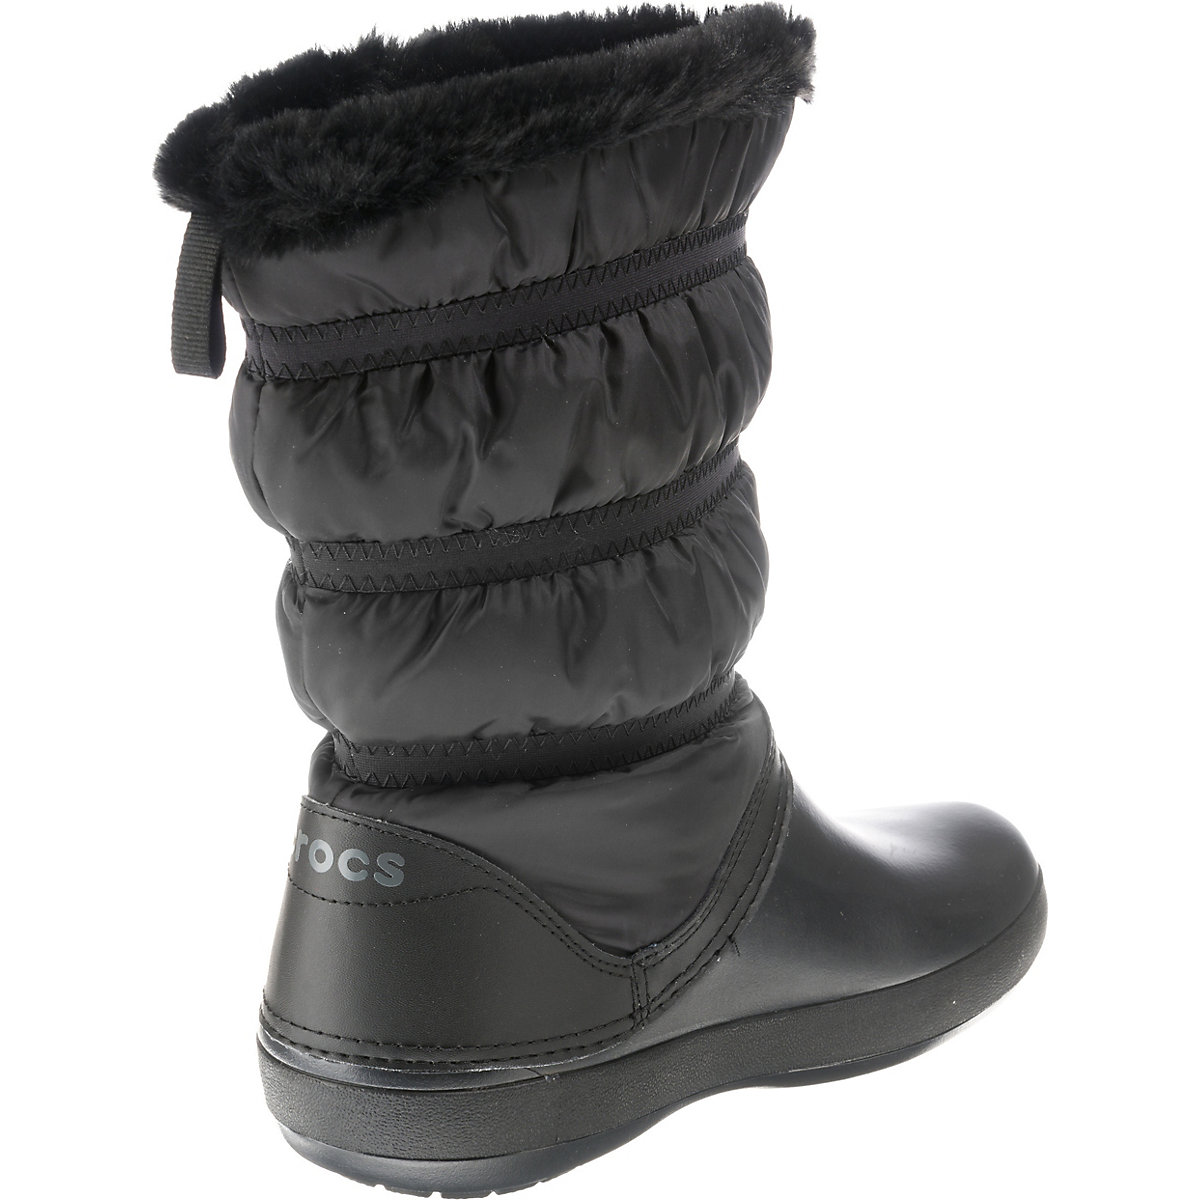 crocs Crocband Winter Boot W Winterstiefel schwarz